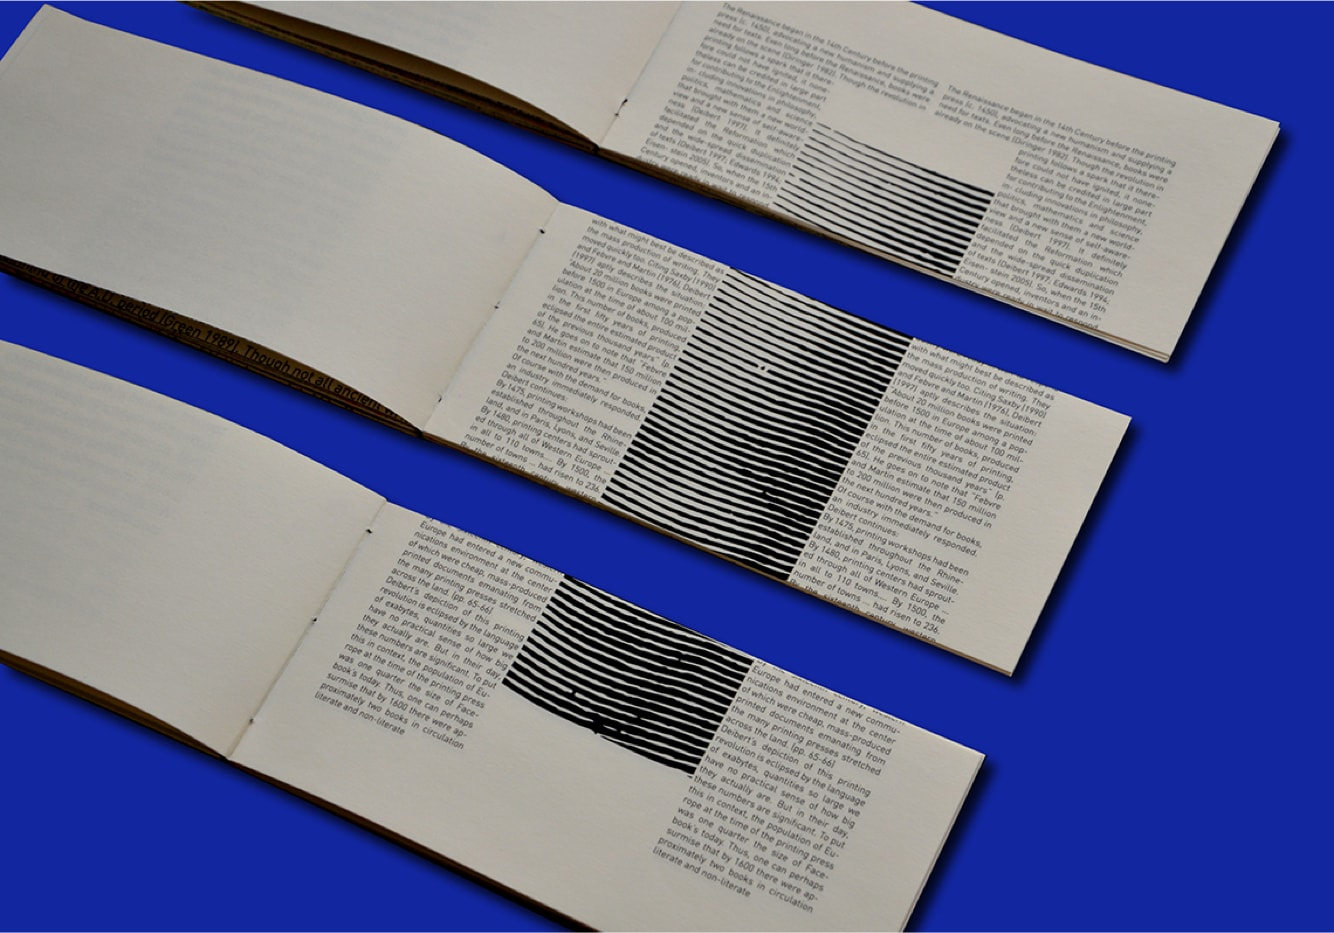 Book of Fragment